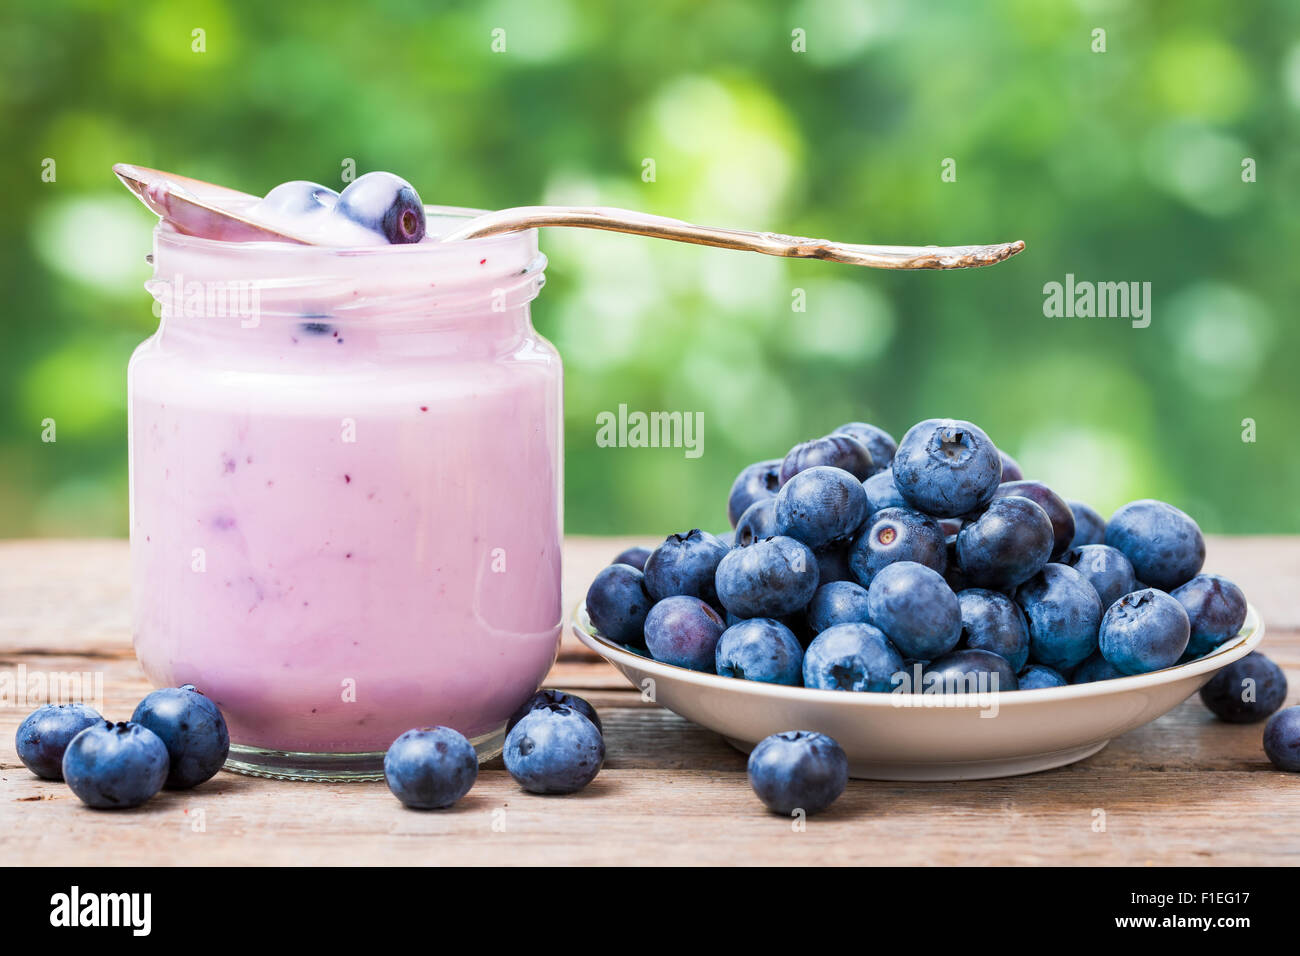 Fresh blueberries yogurt in glass jar and saucer with bilberries. - Stock Image